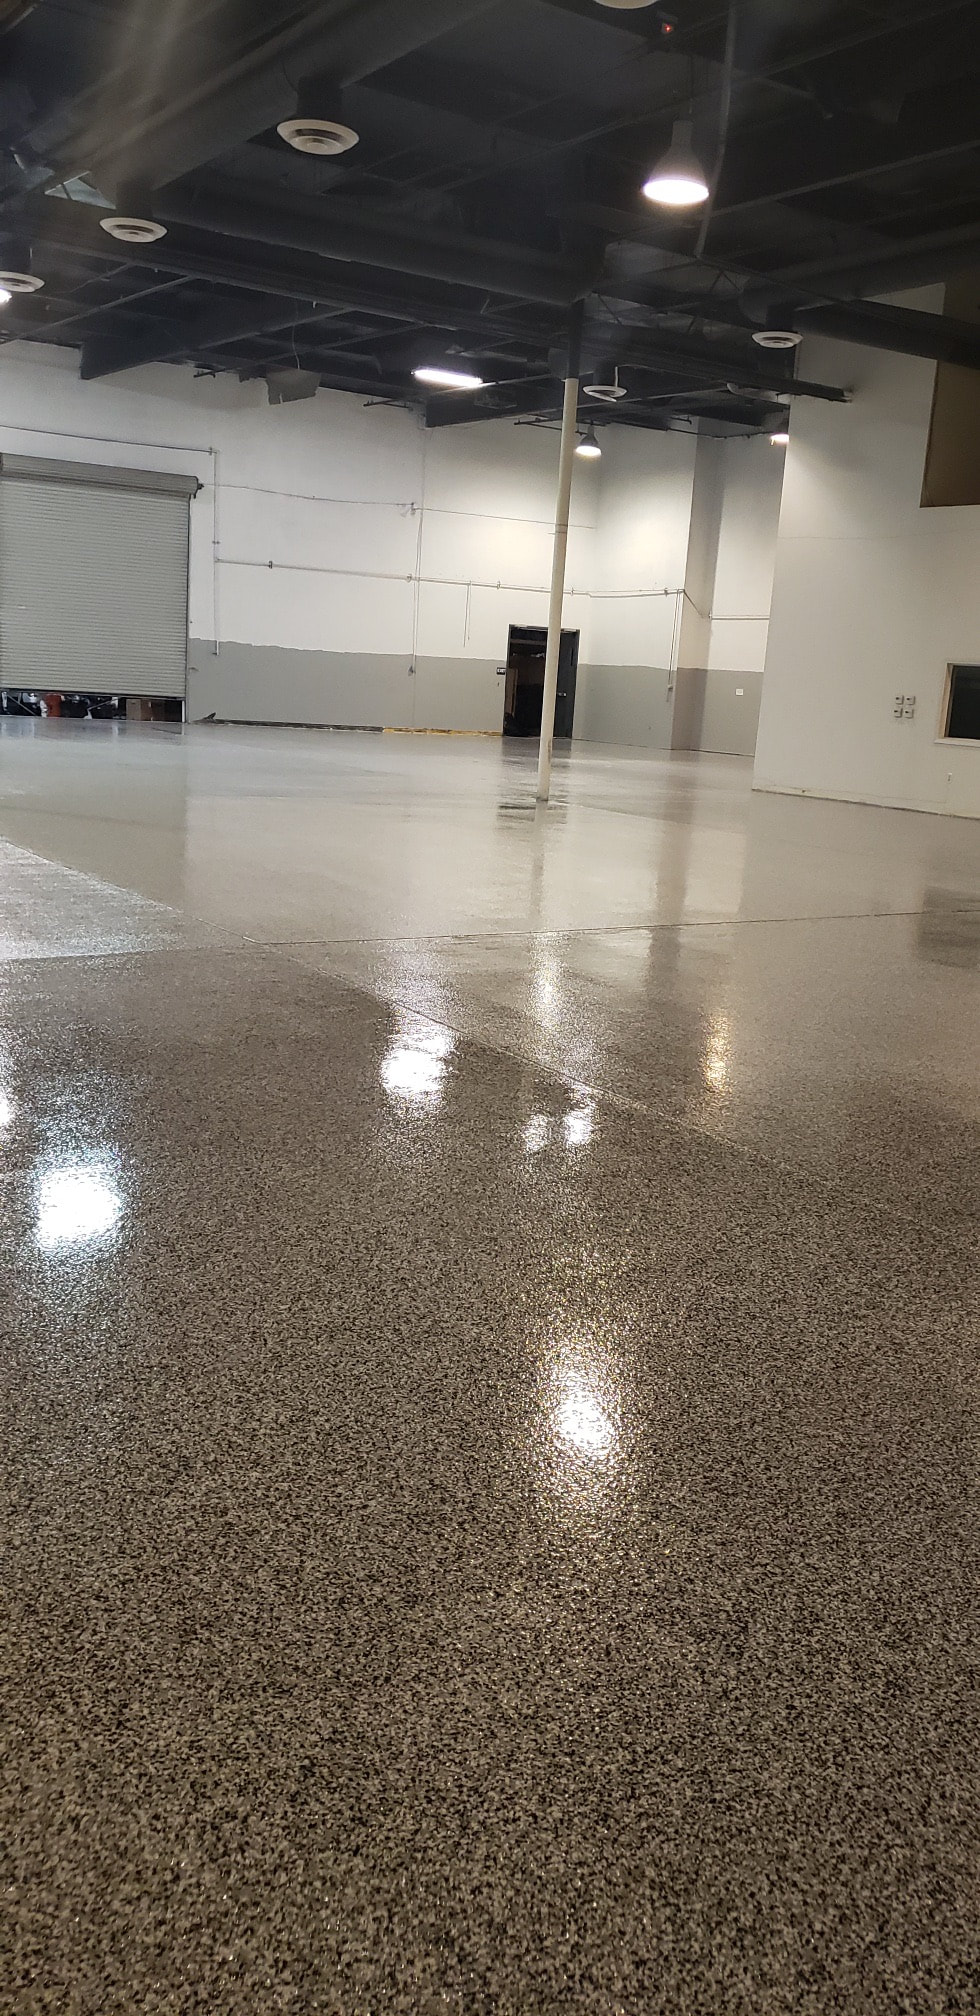 Garage Floors 1 Day Orange County Epoxy Coatings Garage Flooring